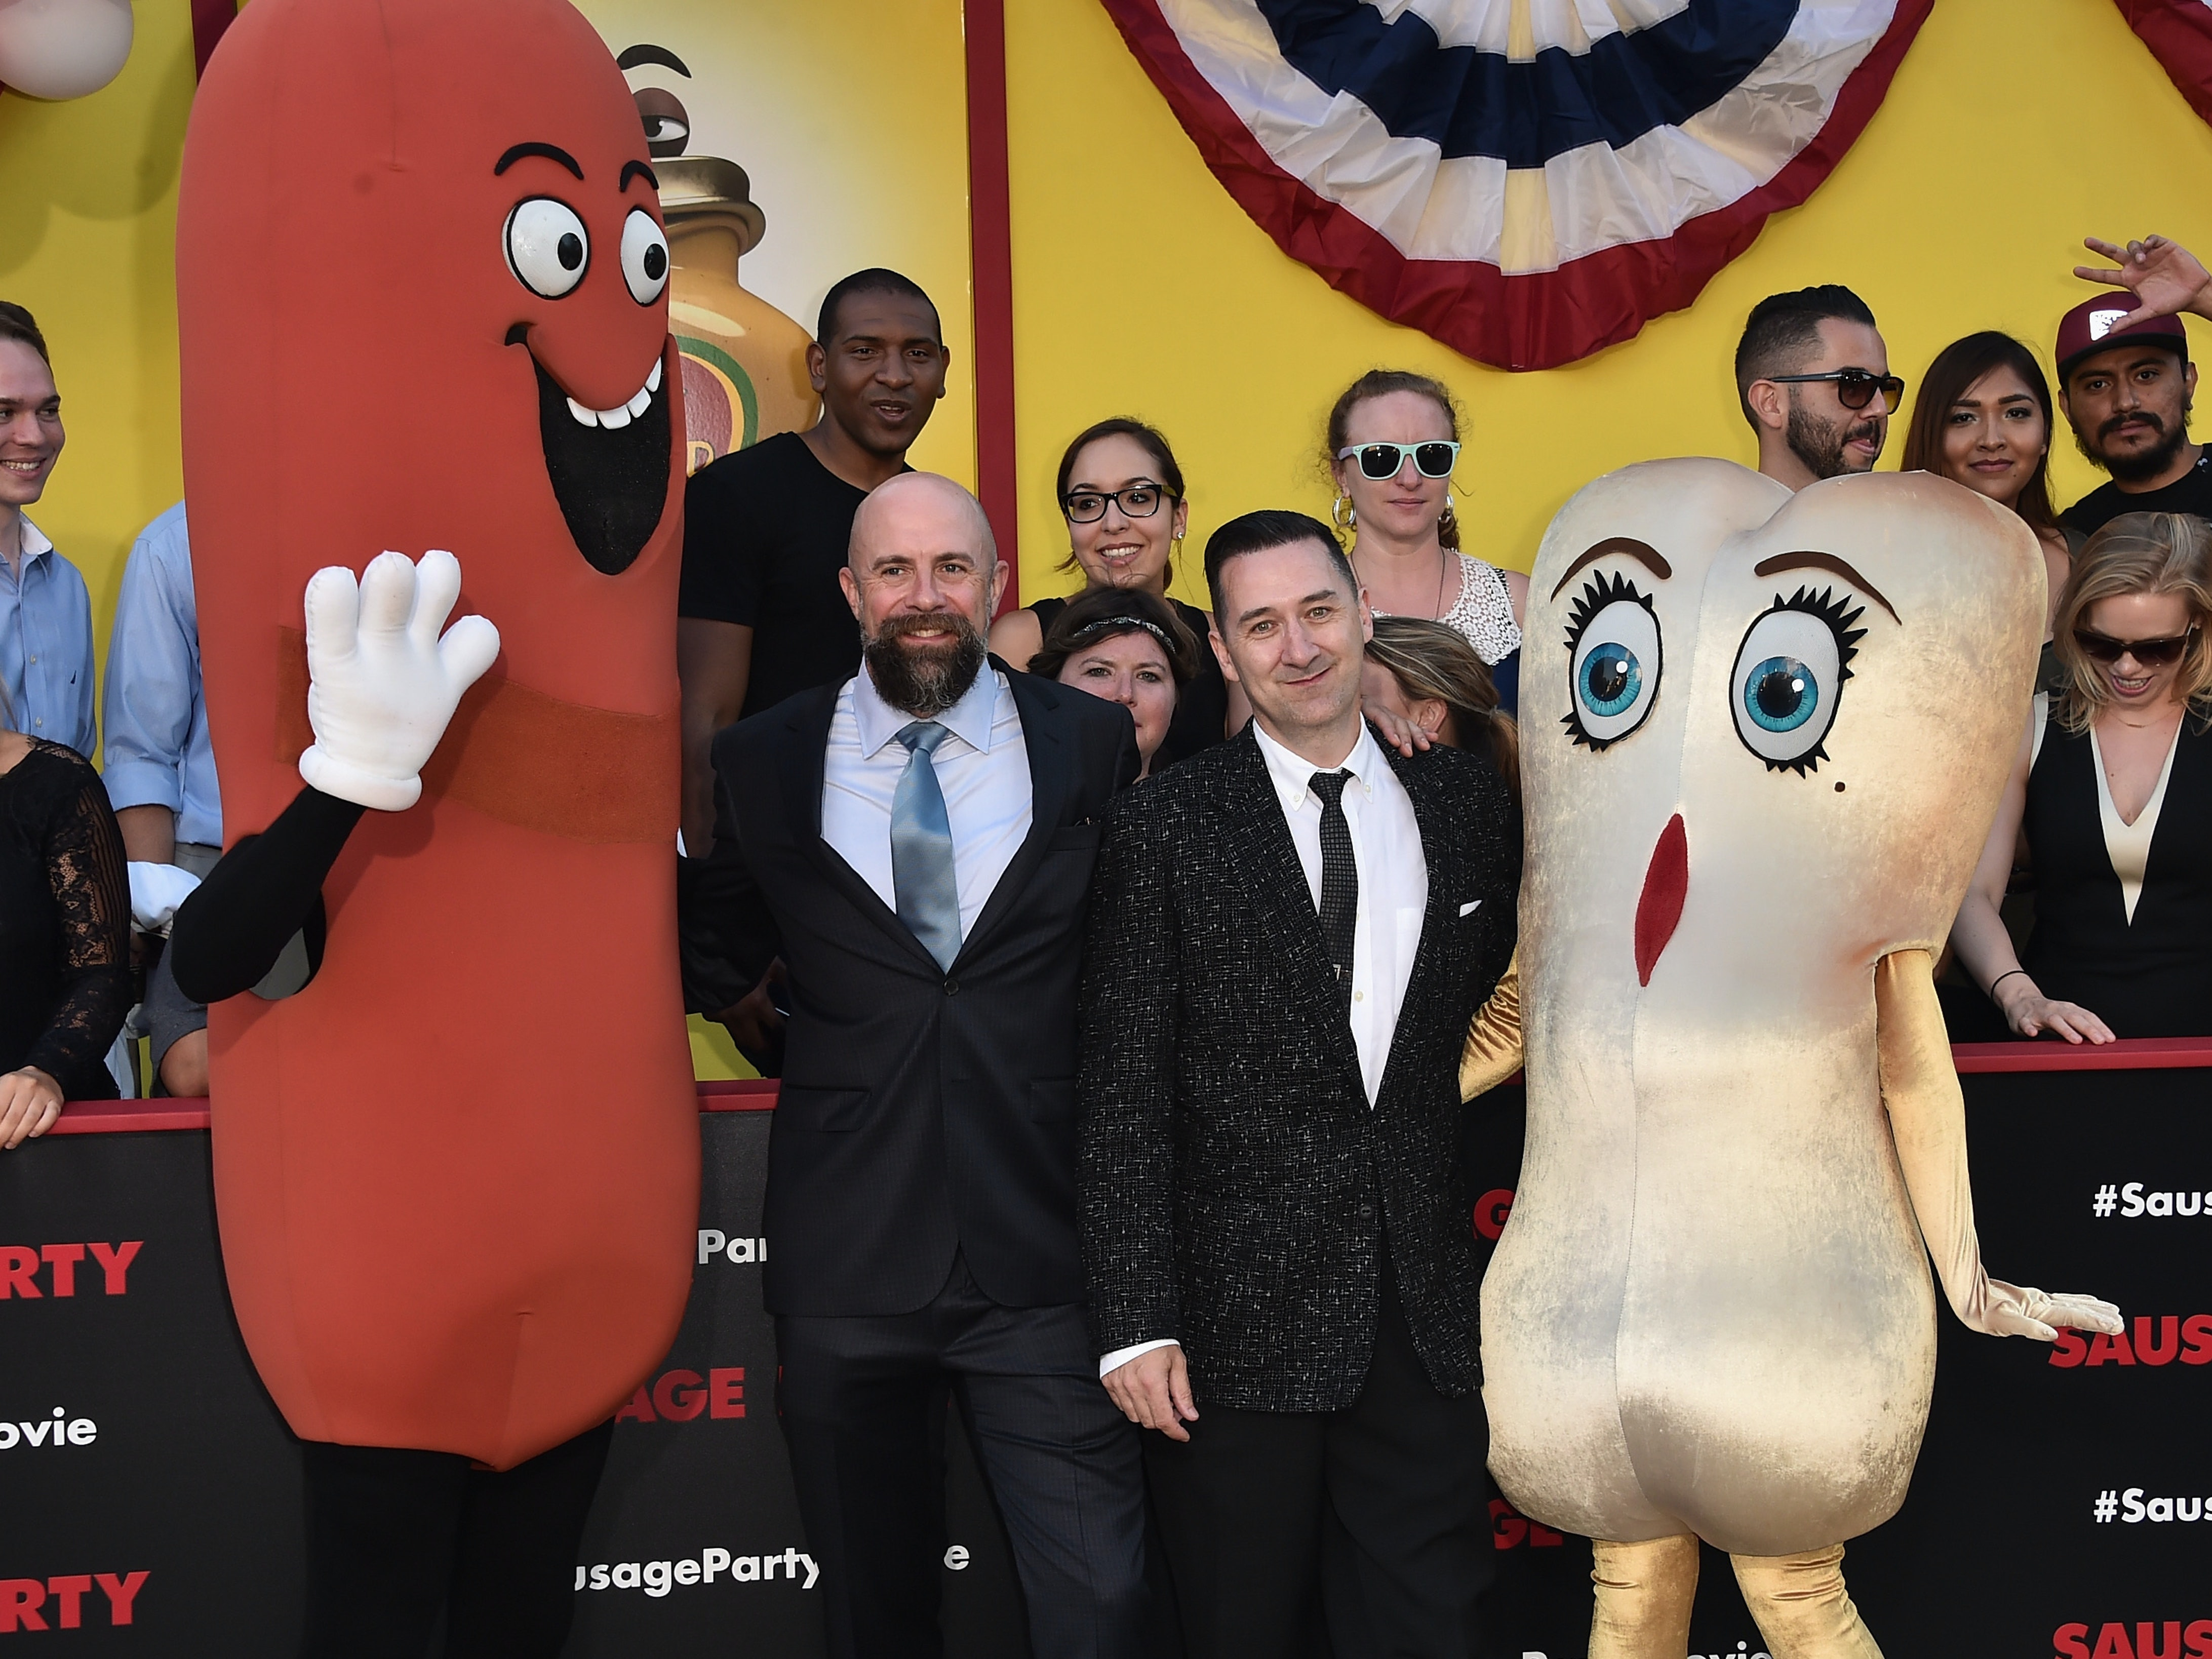 WESTWOOD, CA - AUGUST 09:  Directors Conrad Vernon and Greg Tiernan attend the premiere of Sony's 'Sausage Party' at Regency Village Theatre on August 9, 2016 in Westwood, California.  (Photo by Alberto E. Rodriguez/Getty Images)